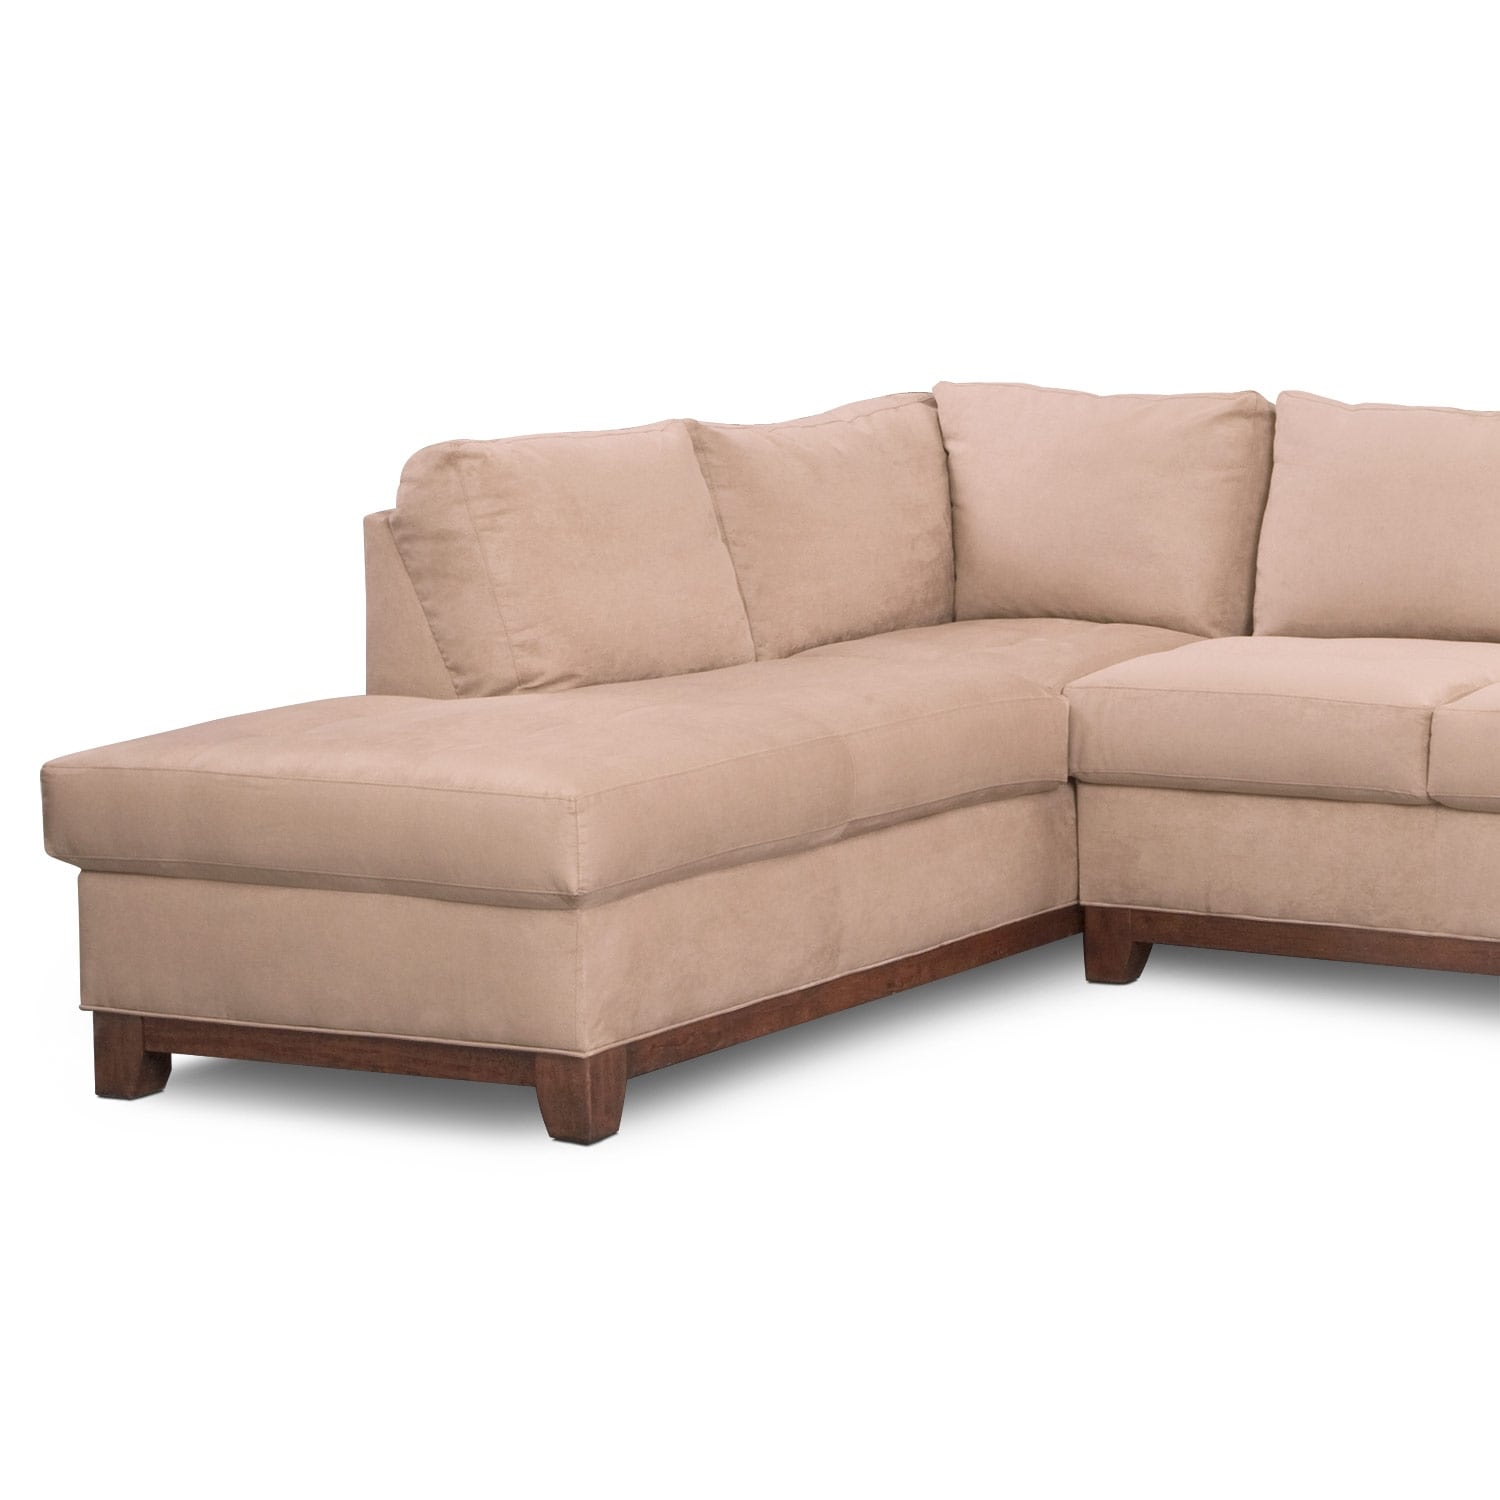 soho 2 piece sectional with left facing chaise. Black Bedroom Furniture Sets. Home Design Ideas